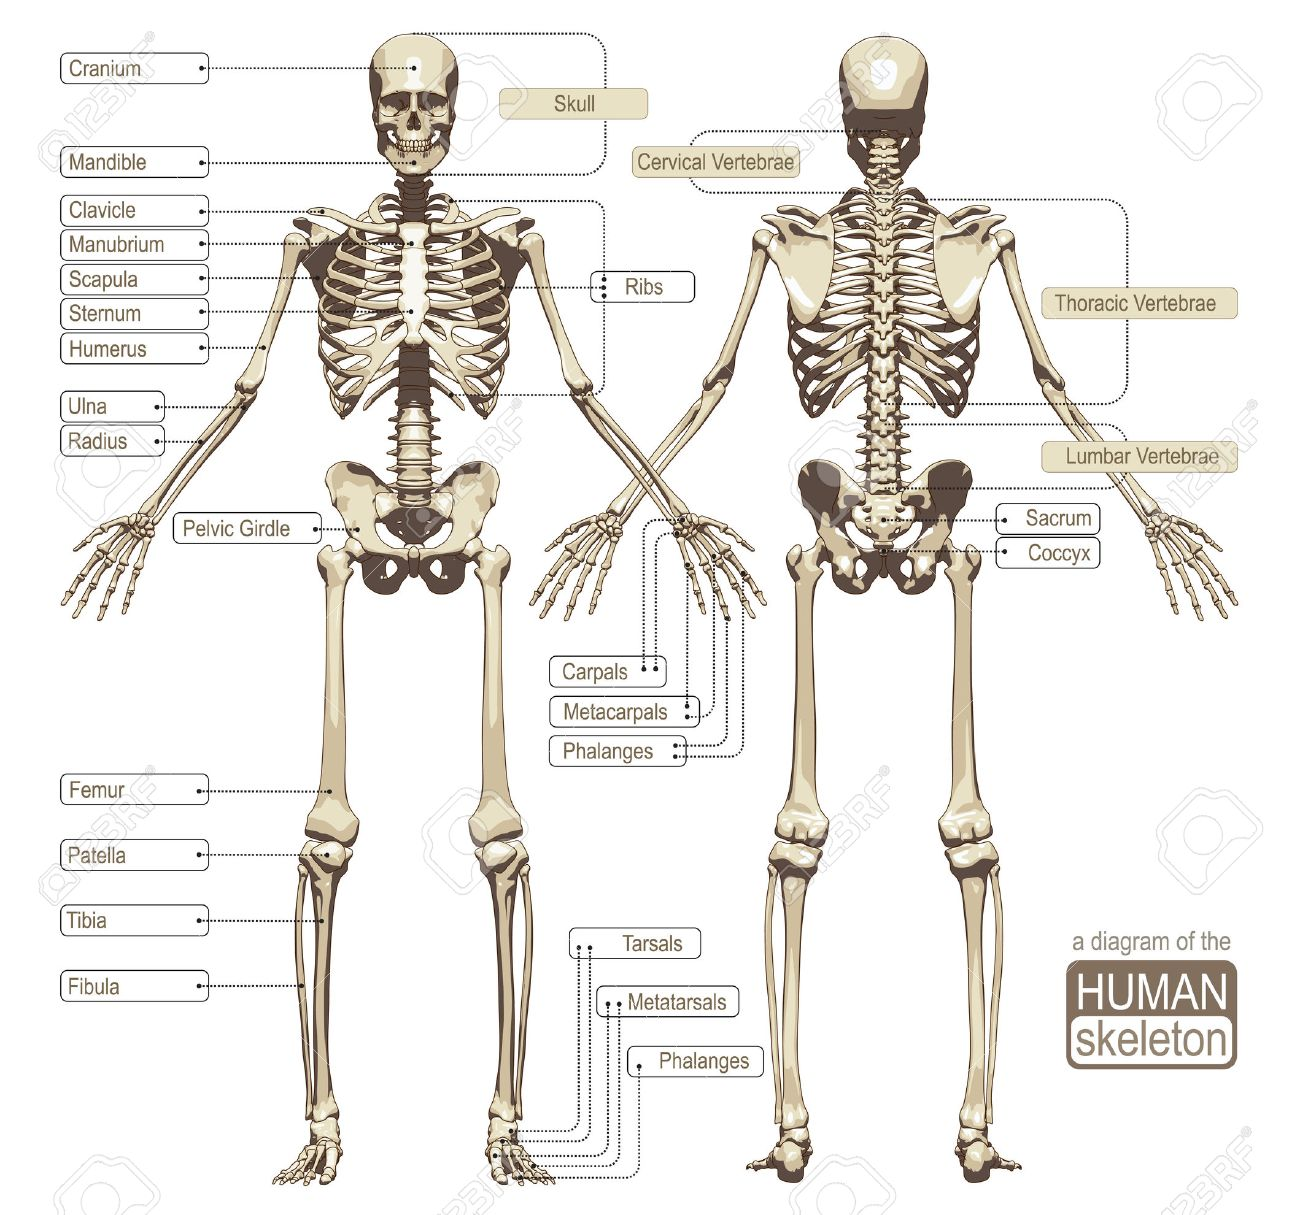 A diagram of the human skeleton with titled main parts of the a diagram of the human skeleton with titled main parts of the skeletal system vector ccuart Choice Image